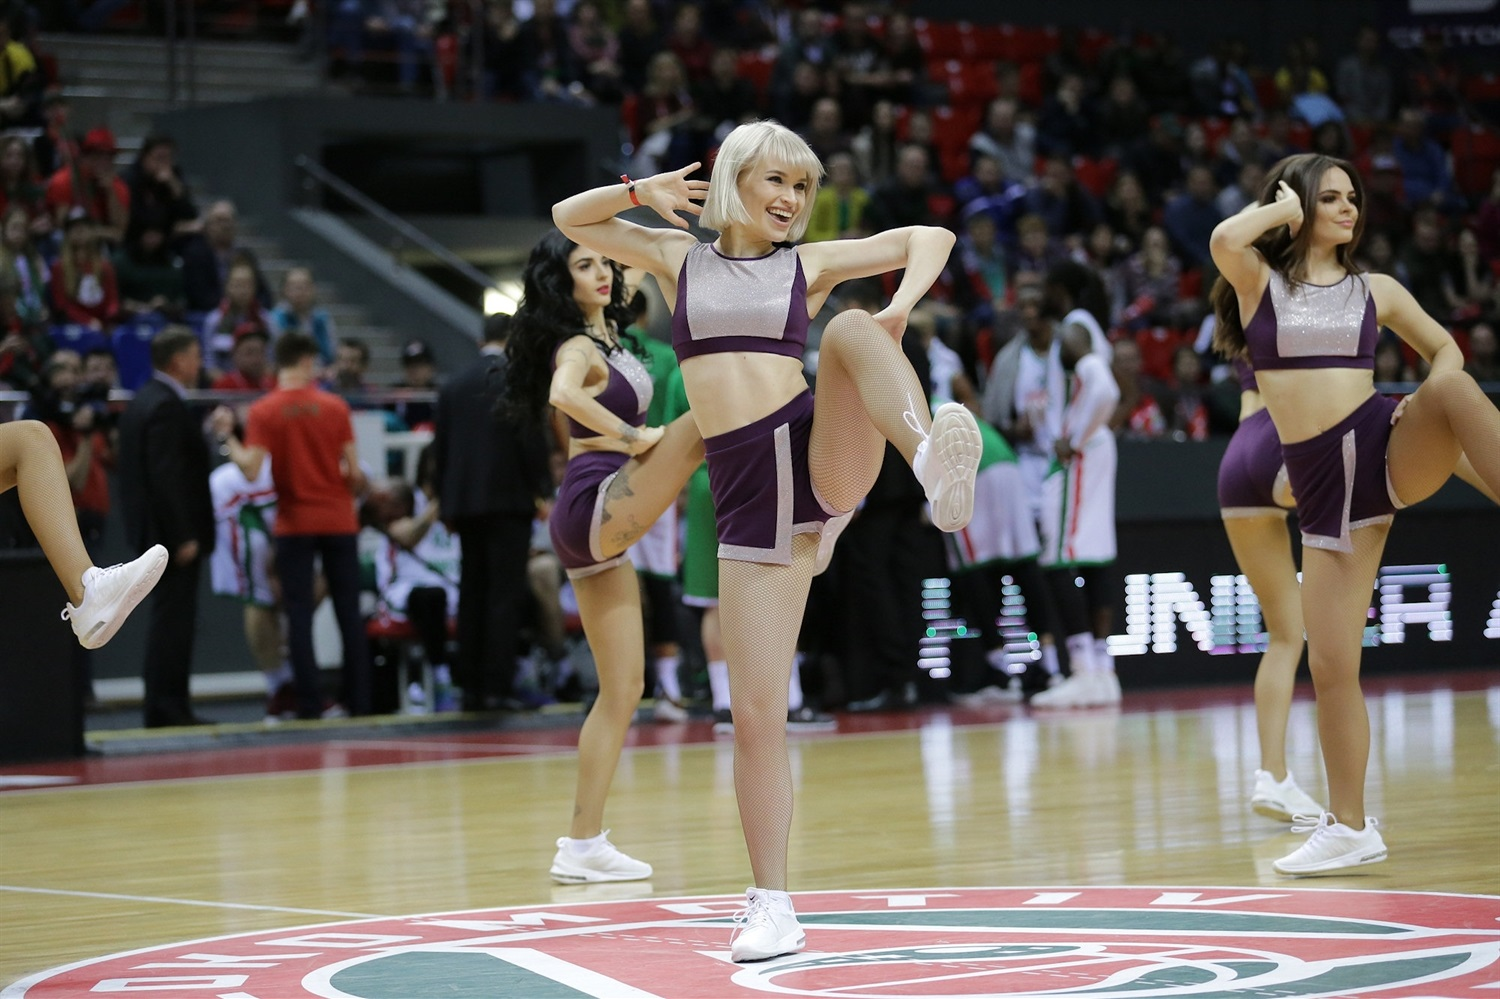 Cheerleders - Lokomotiv Kuban Krasnodar (photo Lokomotiv) - EC18